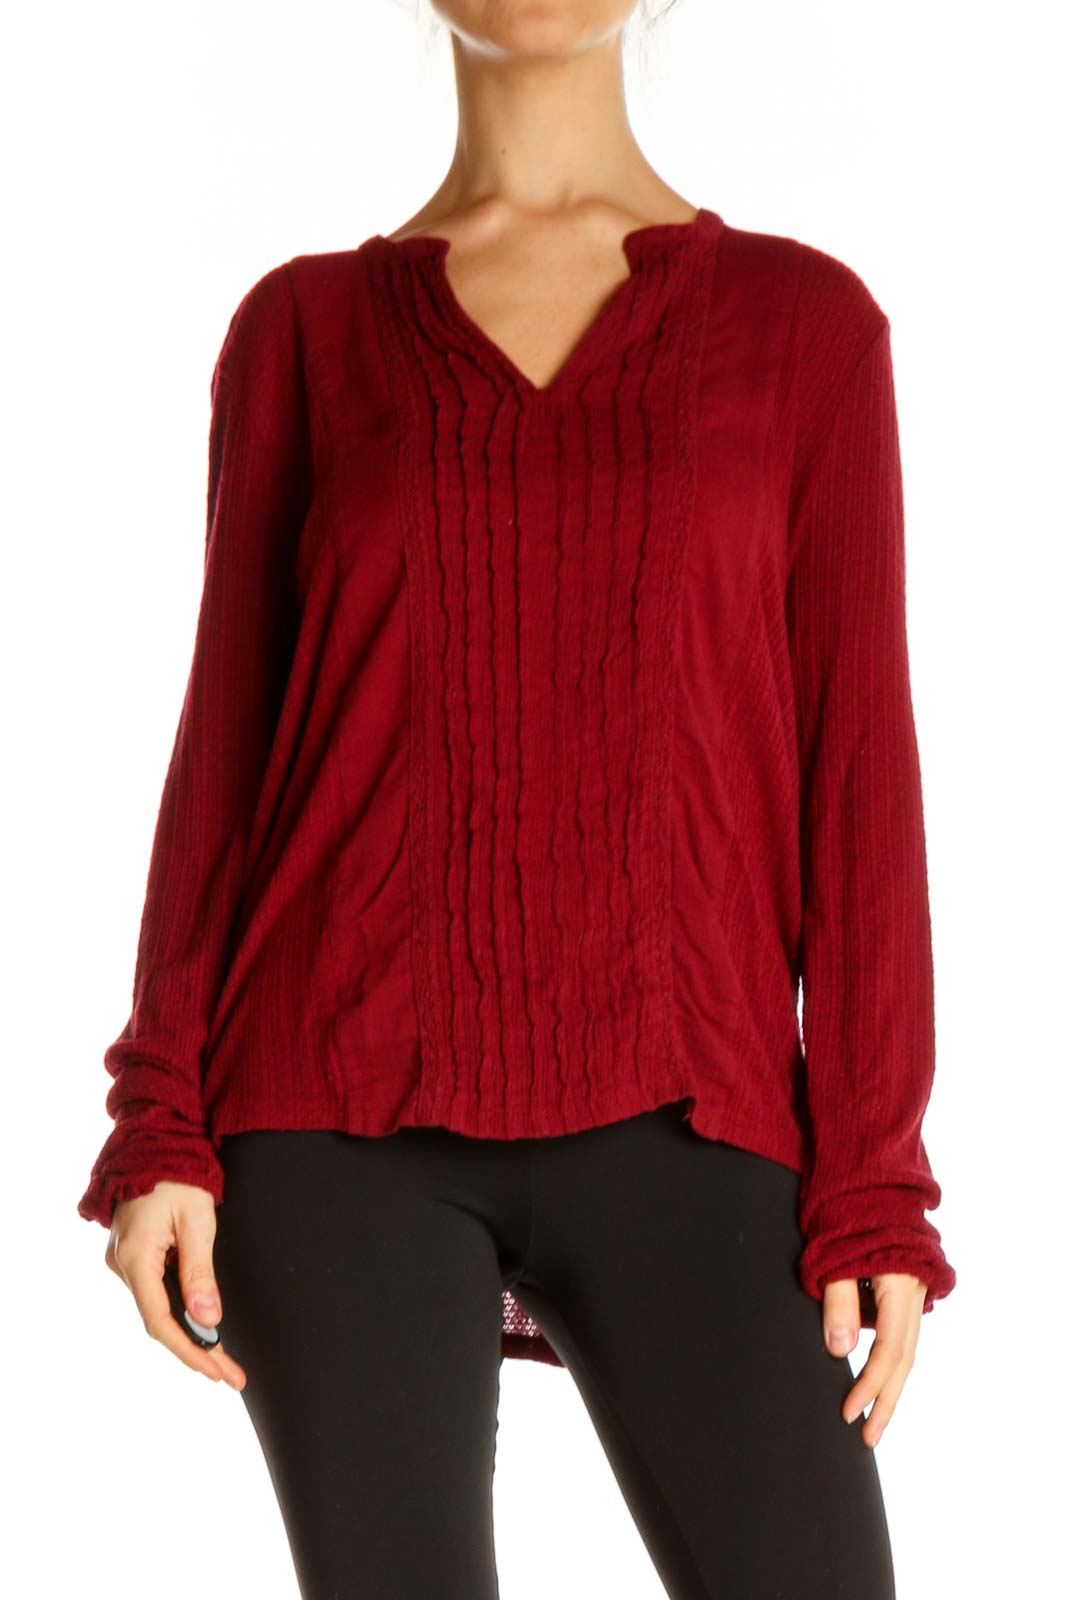 Red Solid All Day Wear Top Front